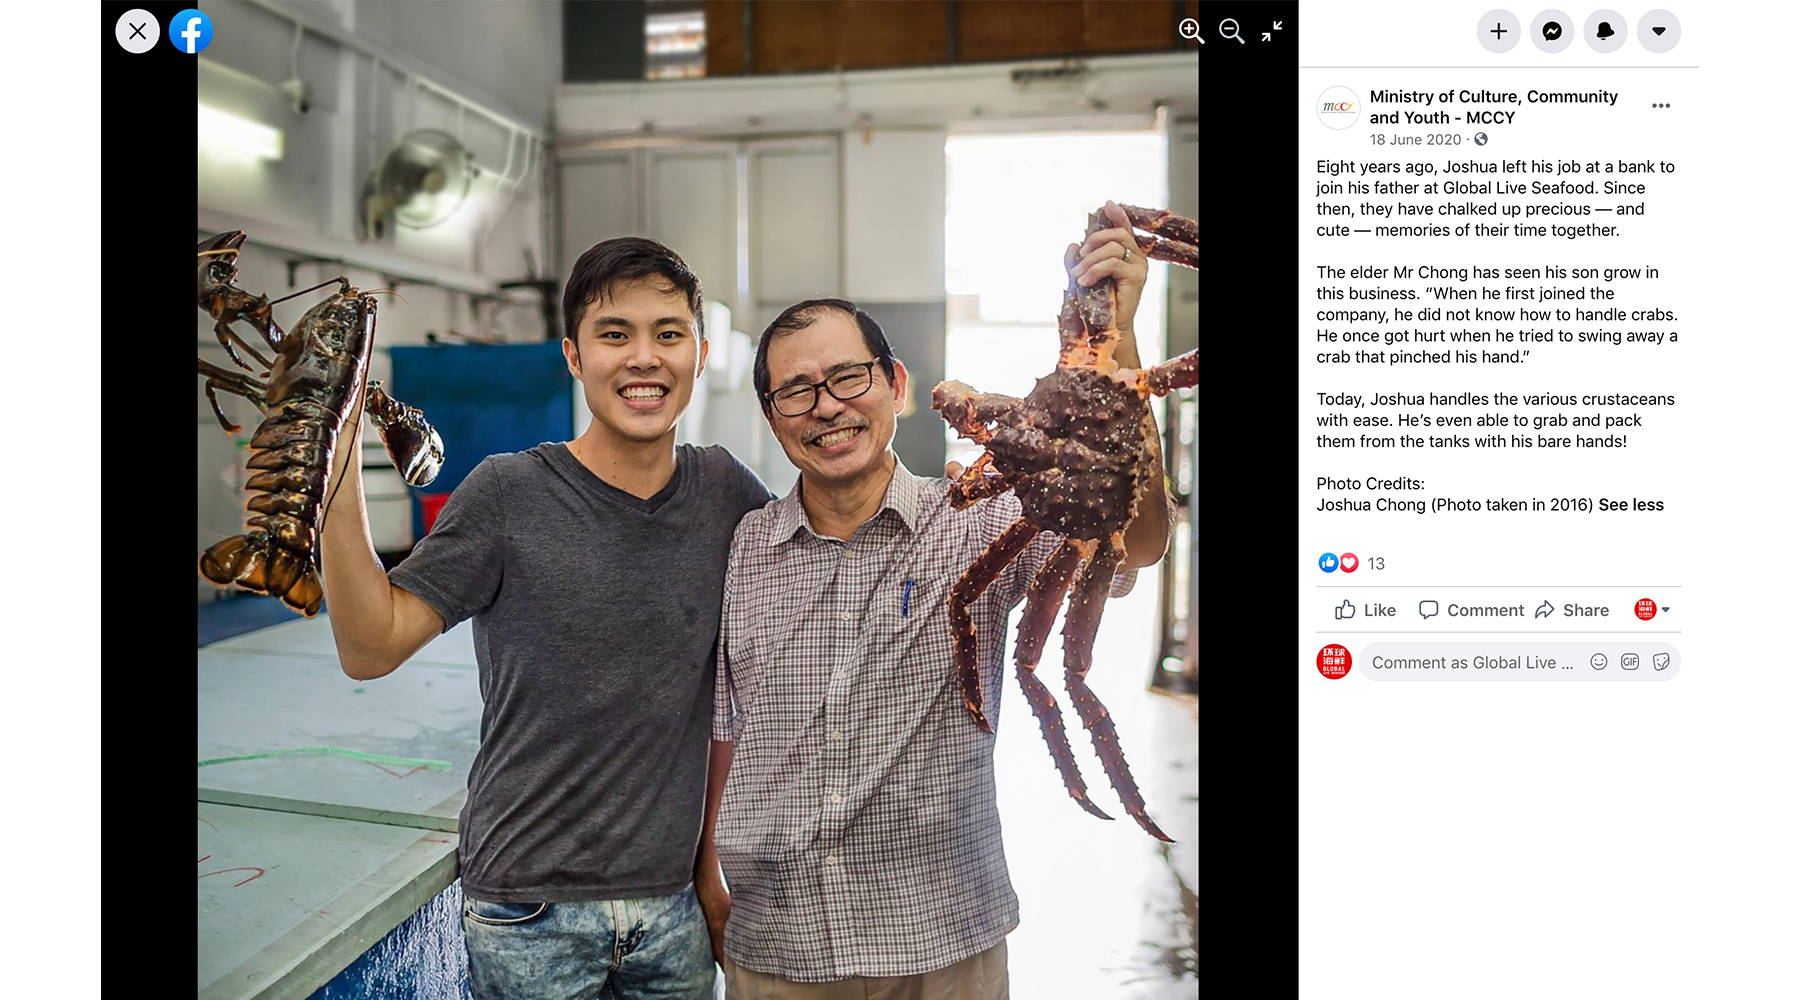 Global Live Seafood featured on MCCY's Facebook